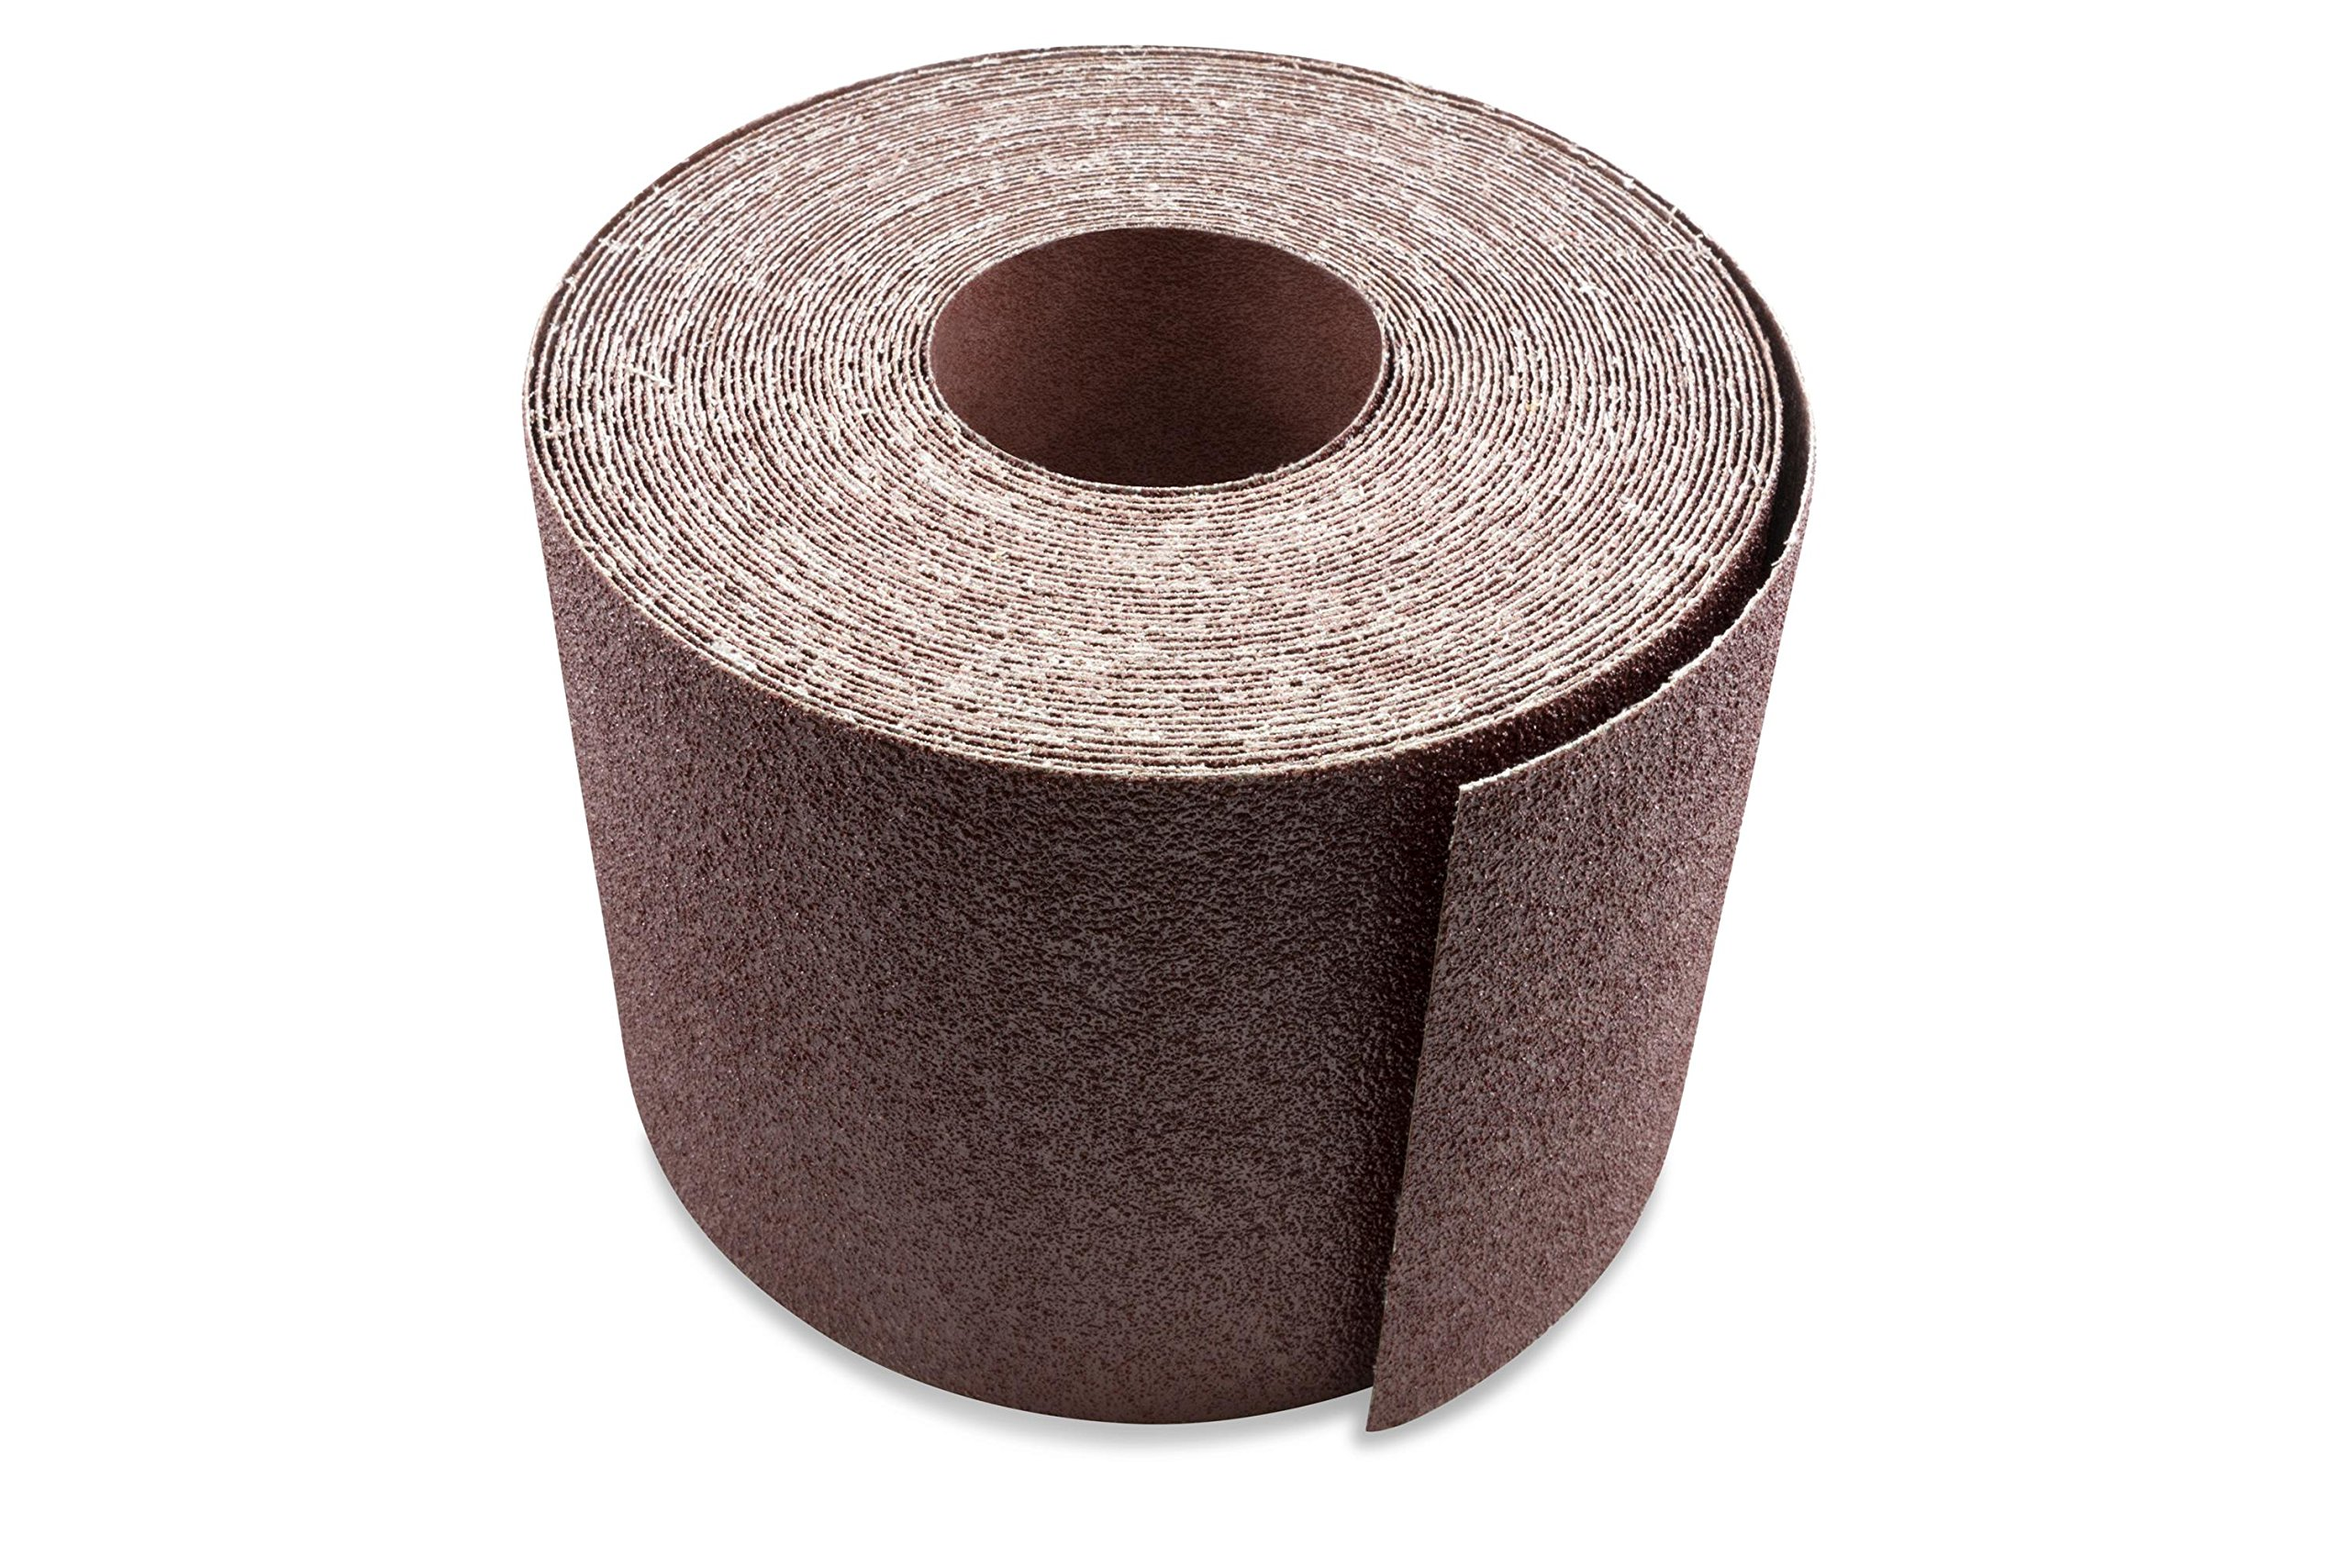 6 Inch X 50 FT Aluminum Oxide Ready-to-Cut Cloth Sanding Roll for Drum Sanders by Red Label Abrasives